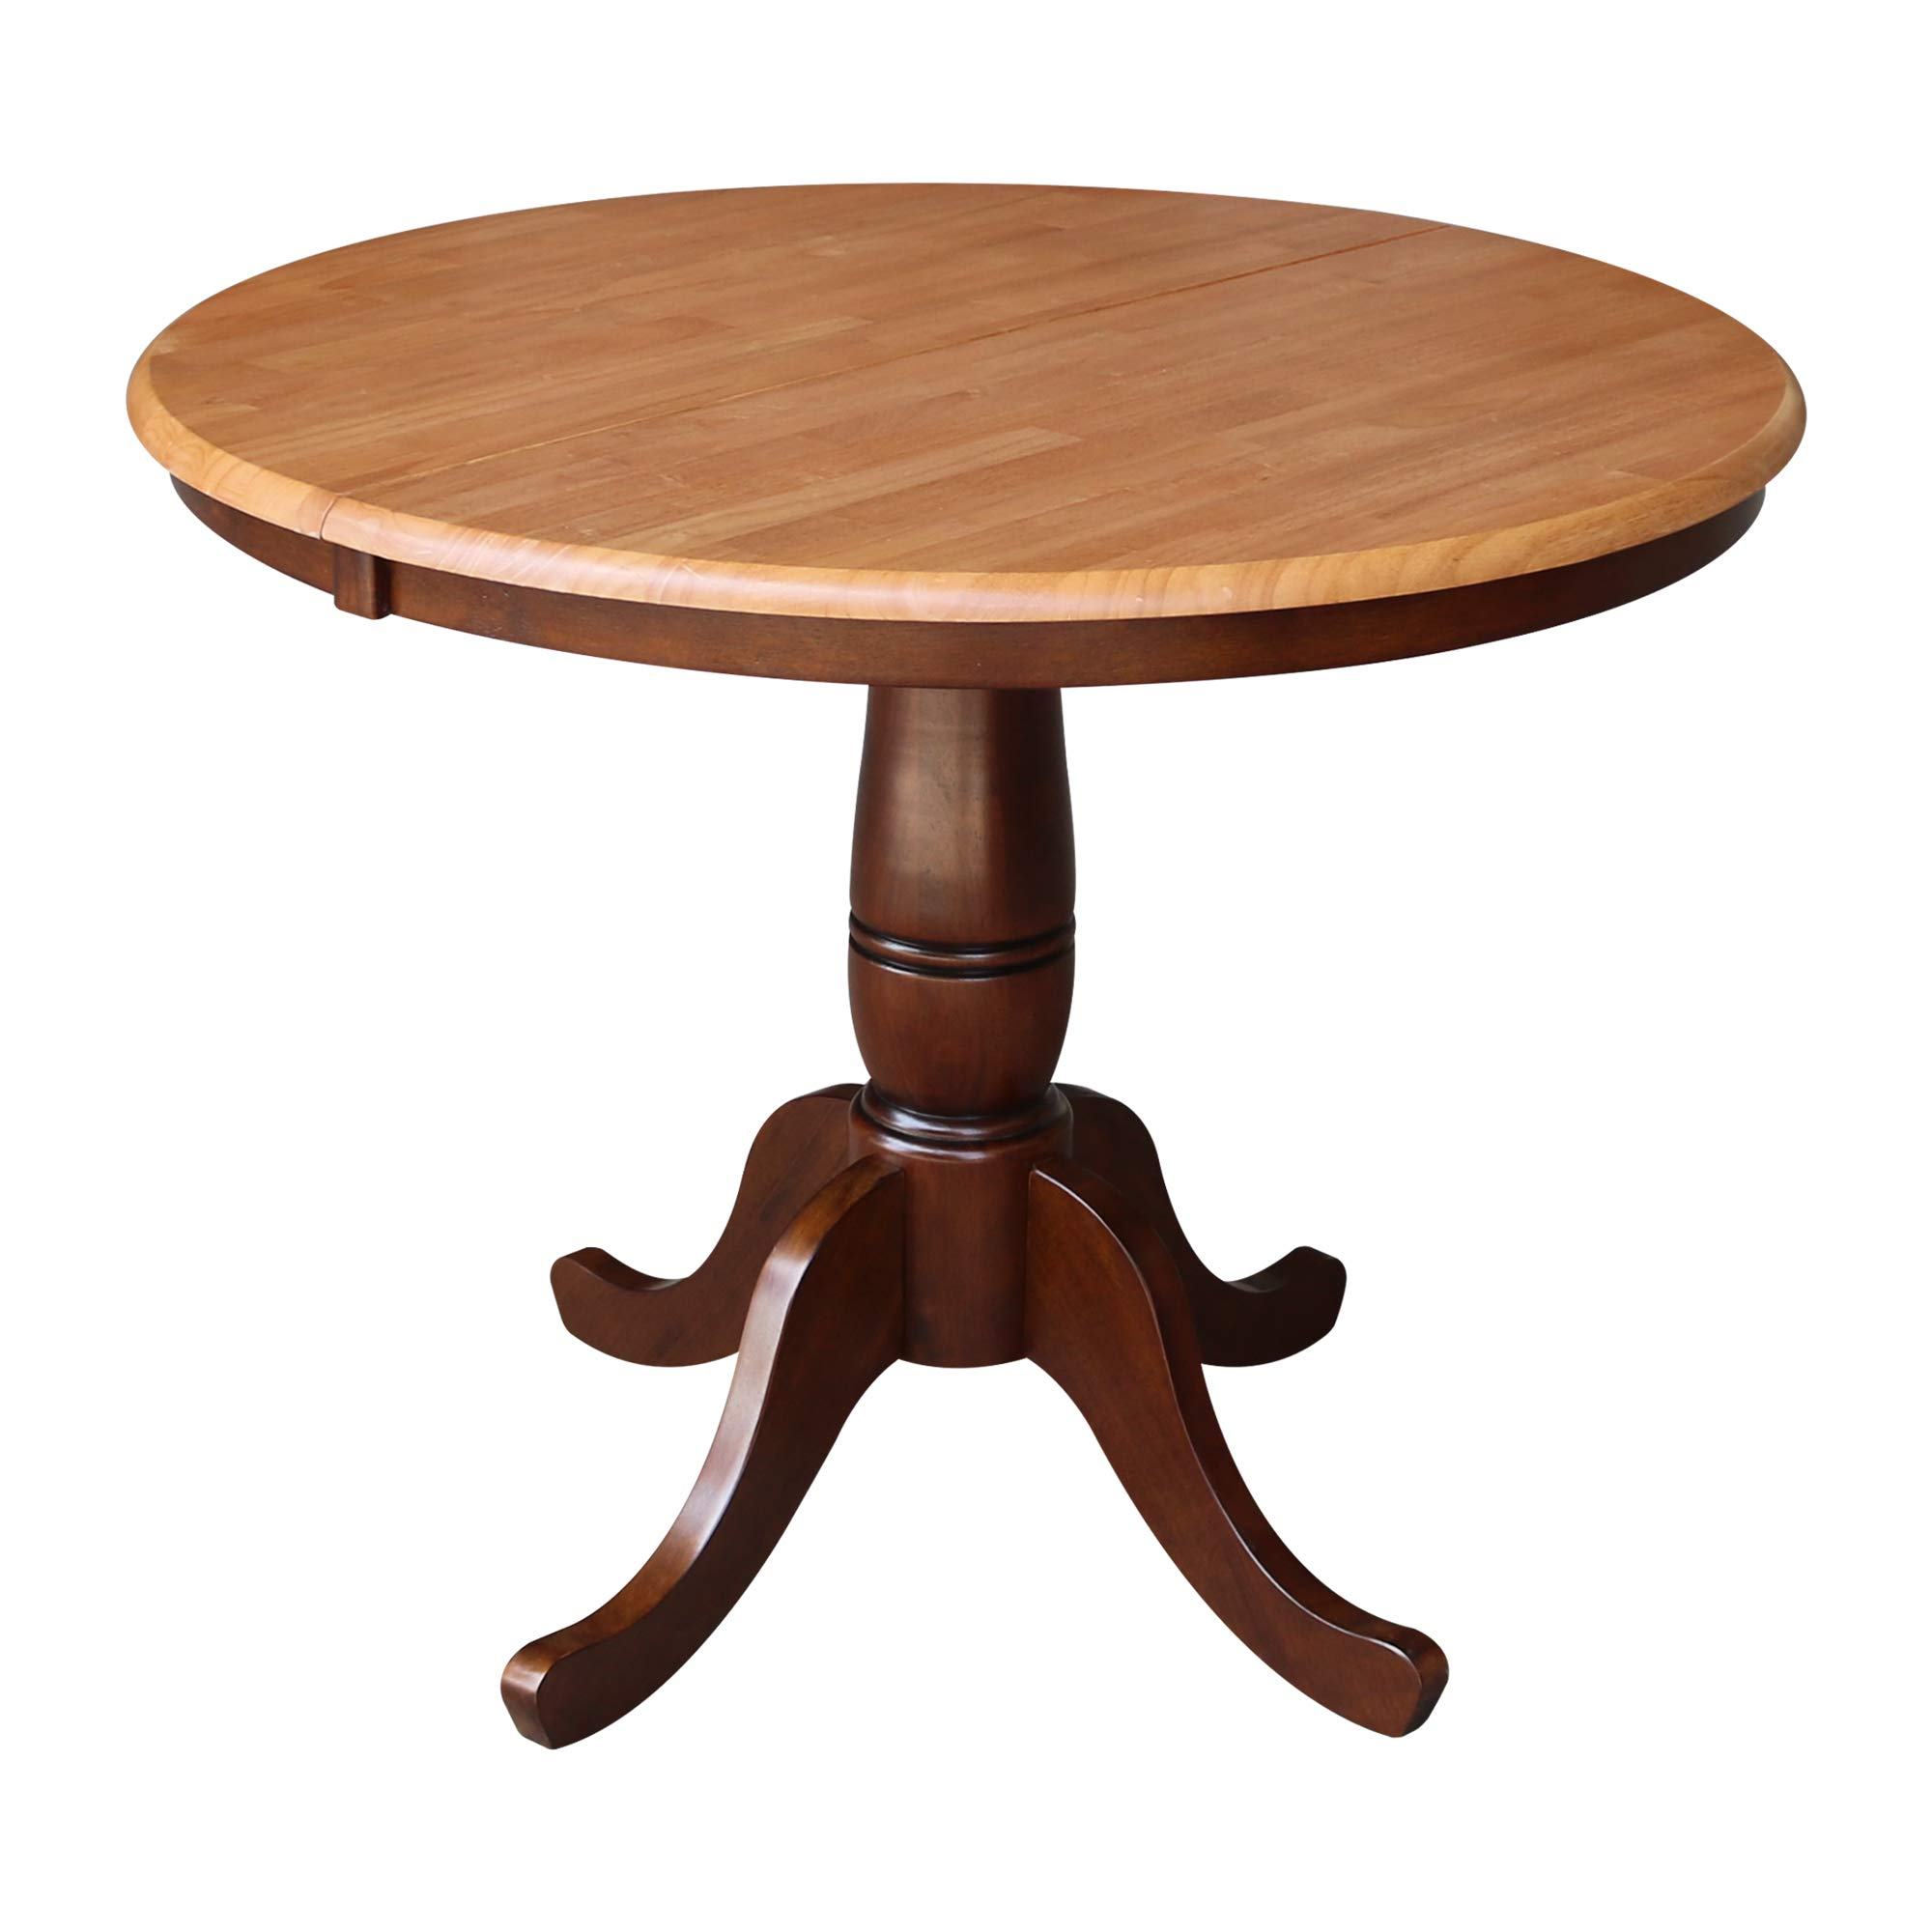 International Concepts 36-Inch Round Top Pedestal Table with 12-Inch Leaf, 30-Inch Standard Table Height, Cinnamon/Espresso by International Concepts